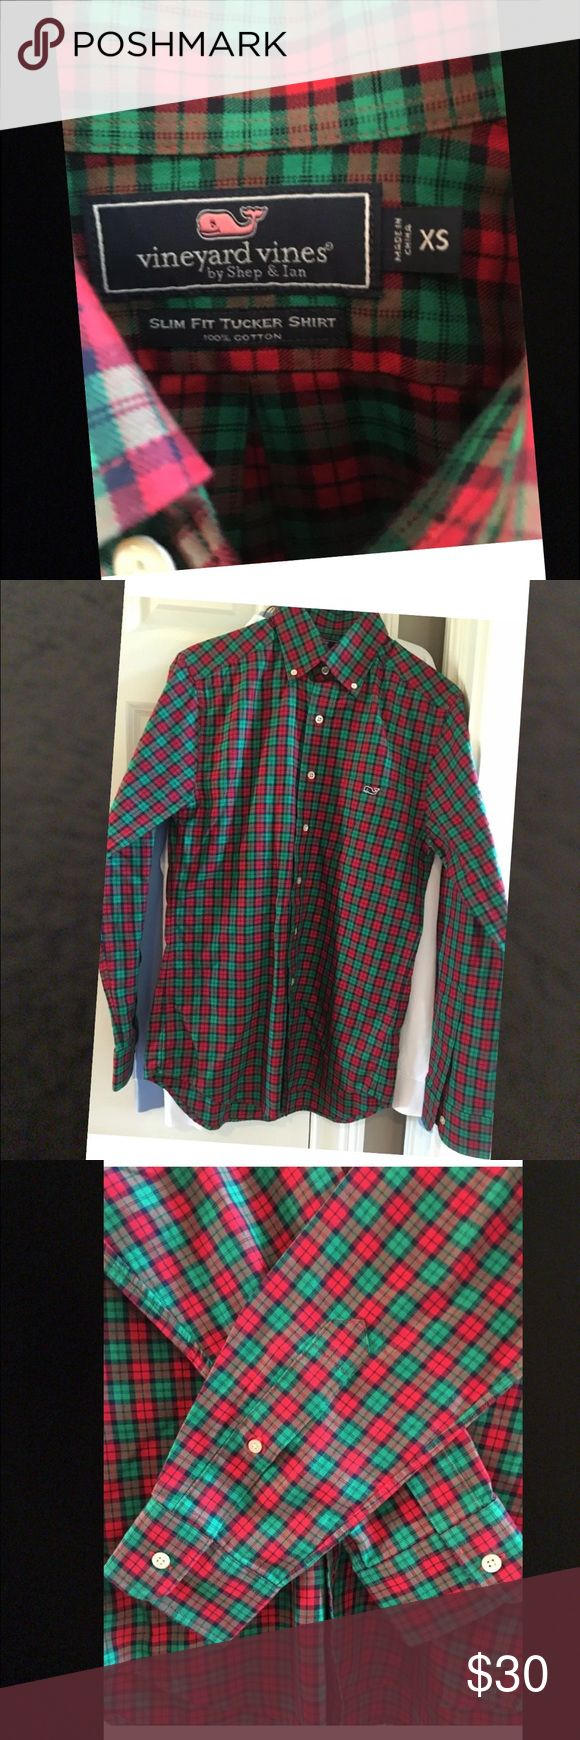 Vineyard Vines Men's slim fit shirt size xs NEVER WORN or laundered. Perfect for size Xl youth as well. Vineyard Vines Shirts Dress Shirts